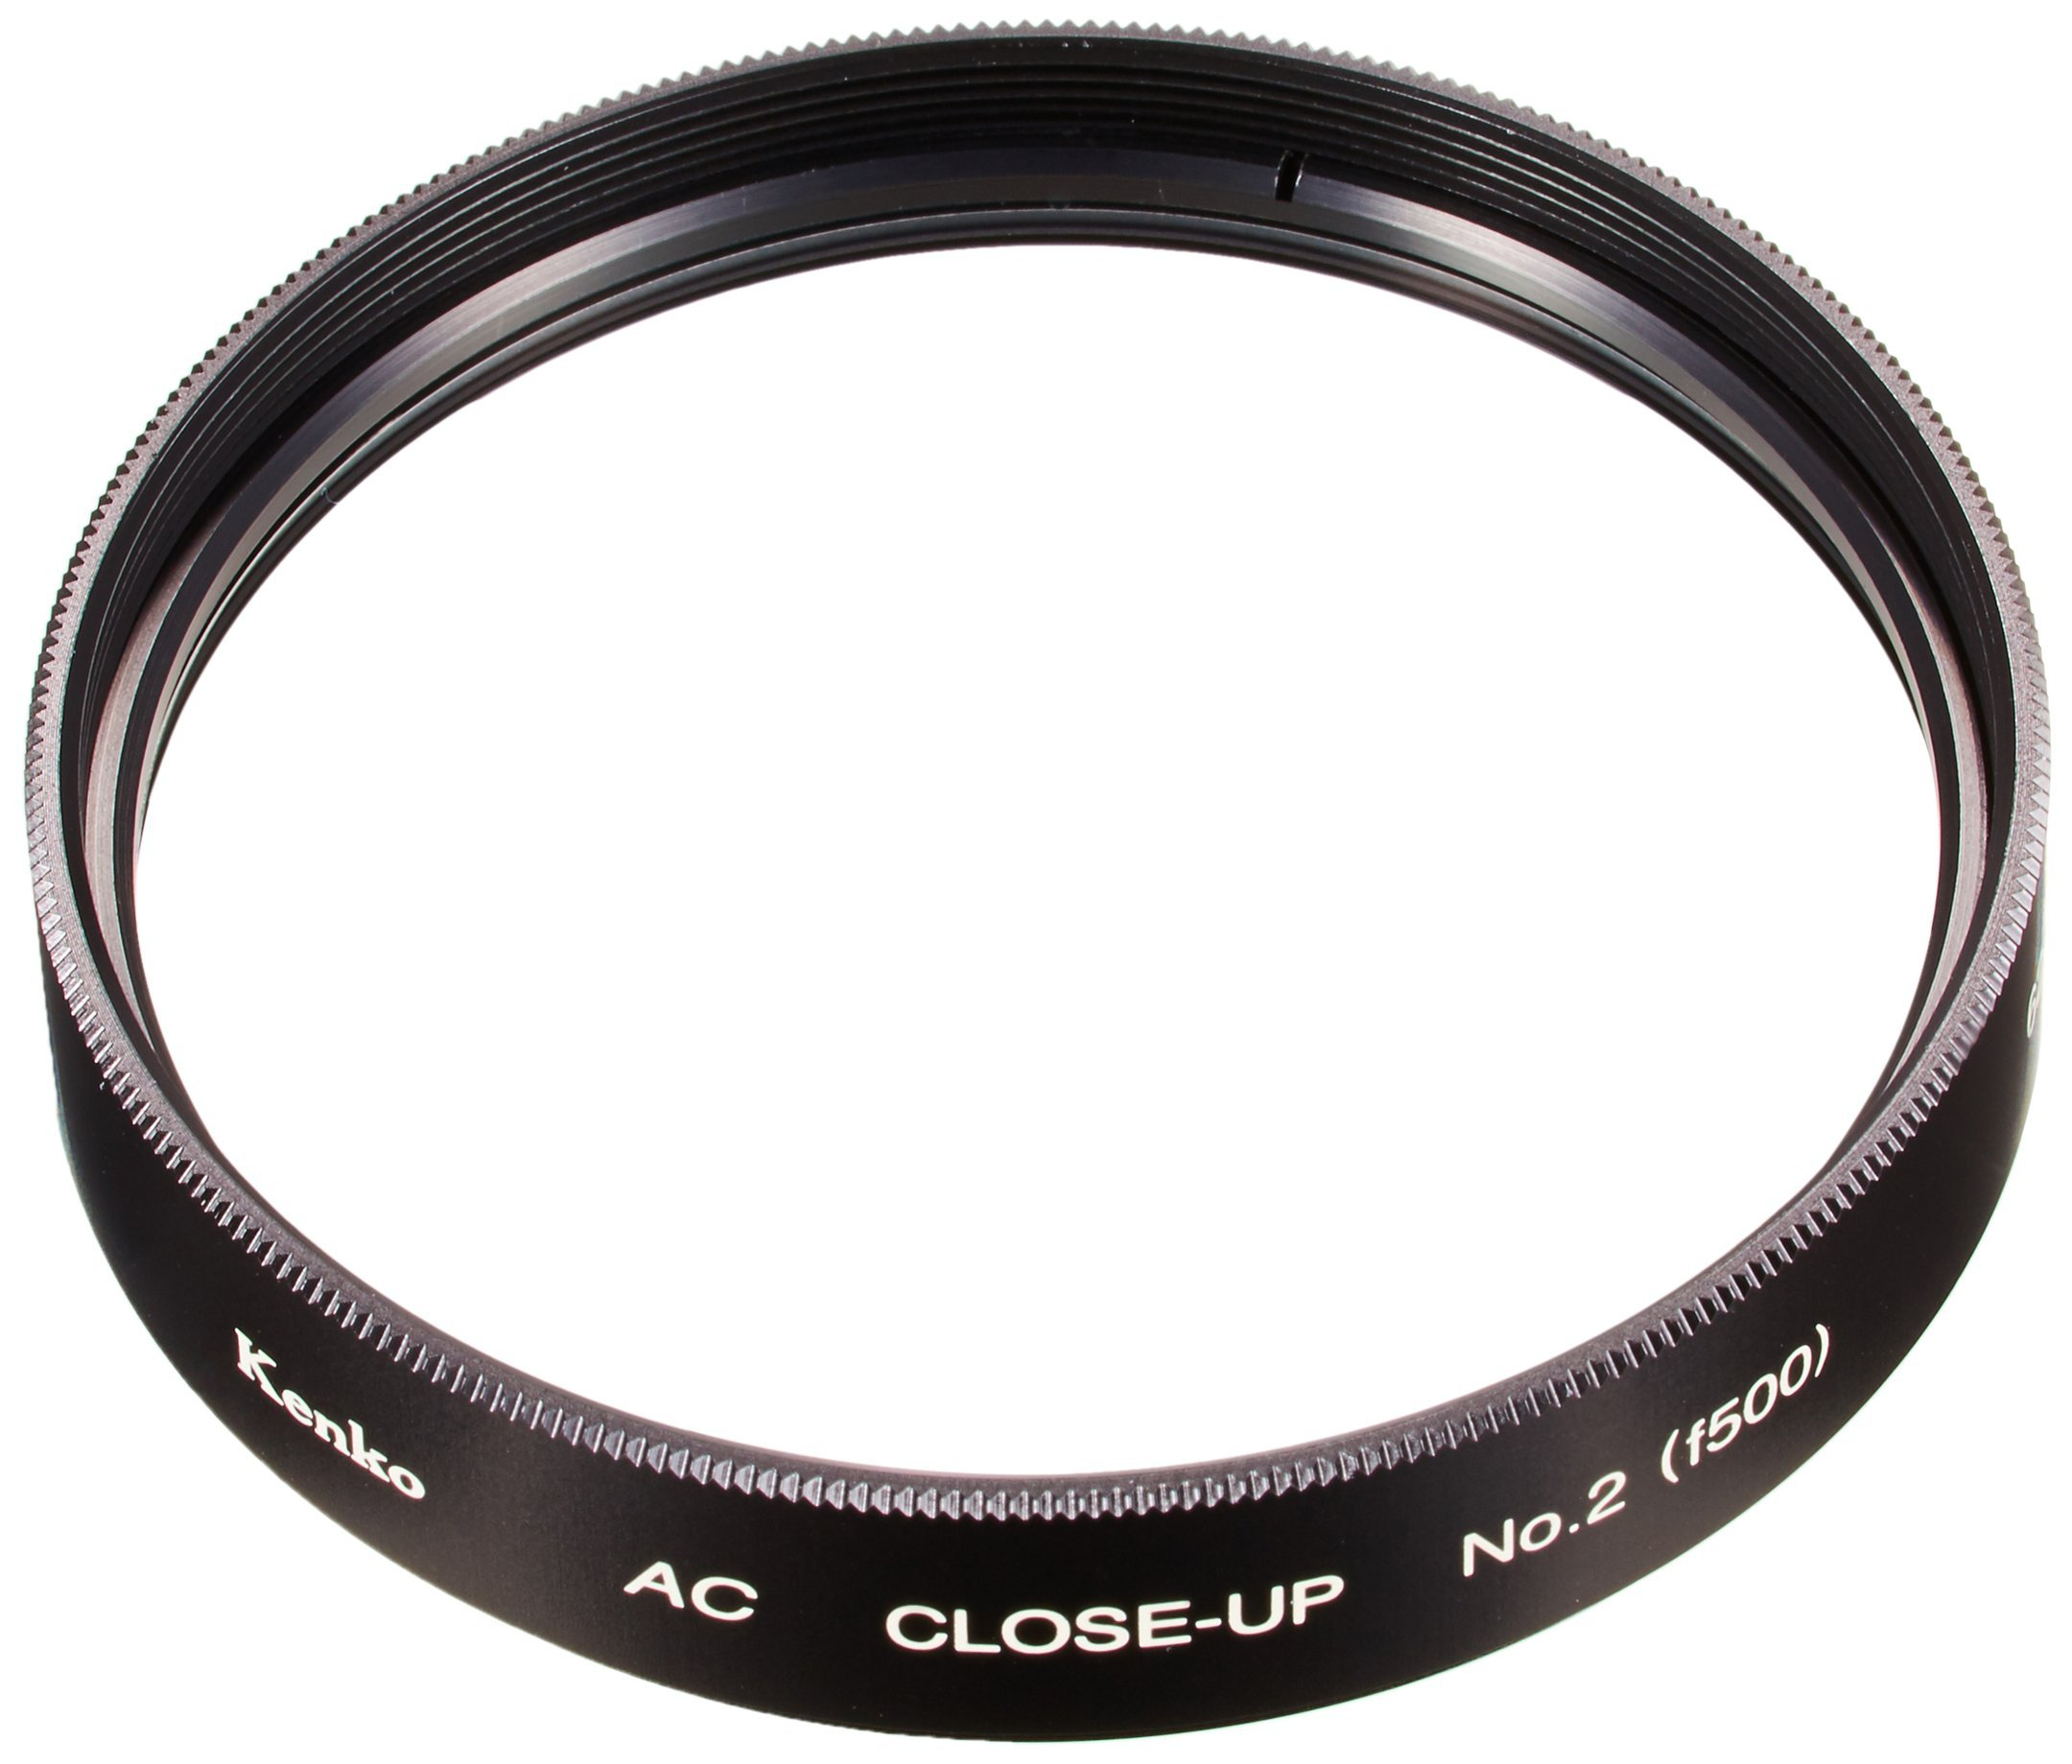 Kenko filter for camera AC close-up lens No.2 62mm close-up shooting for 362 921 by KENKO